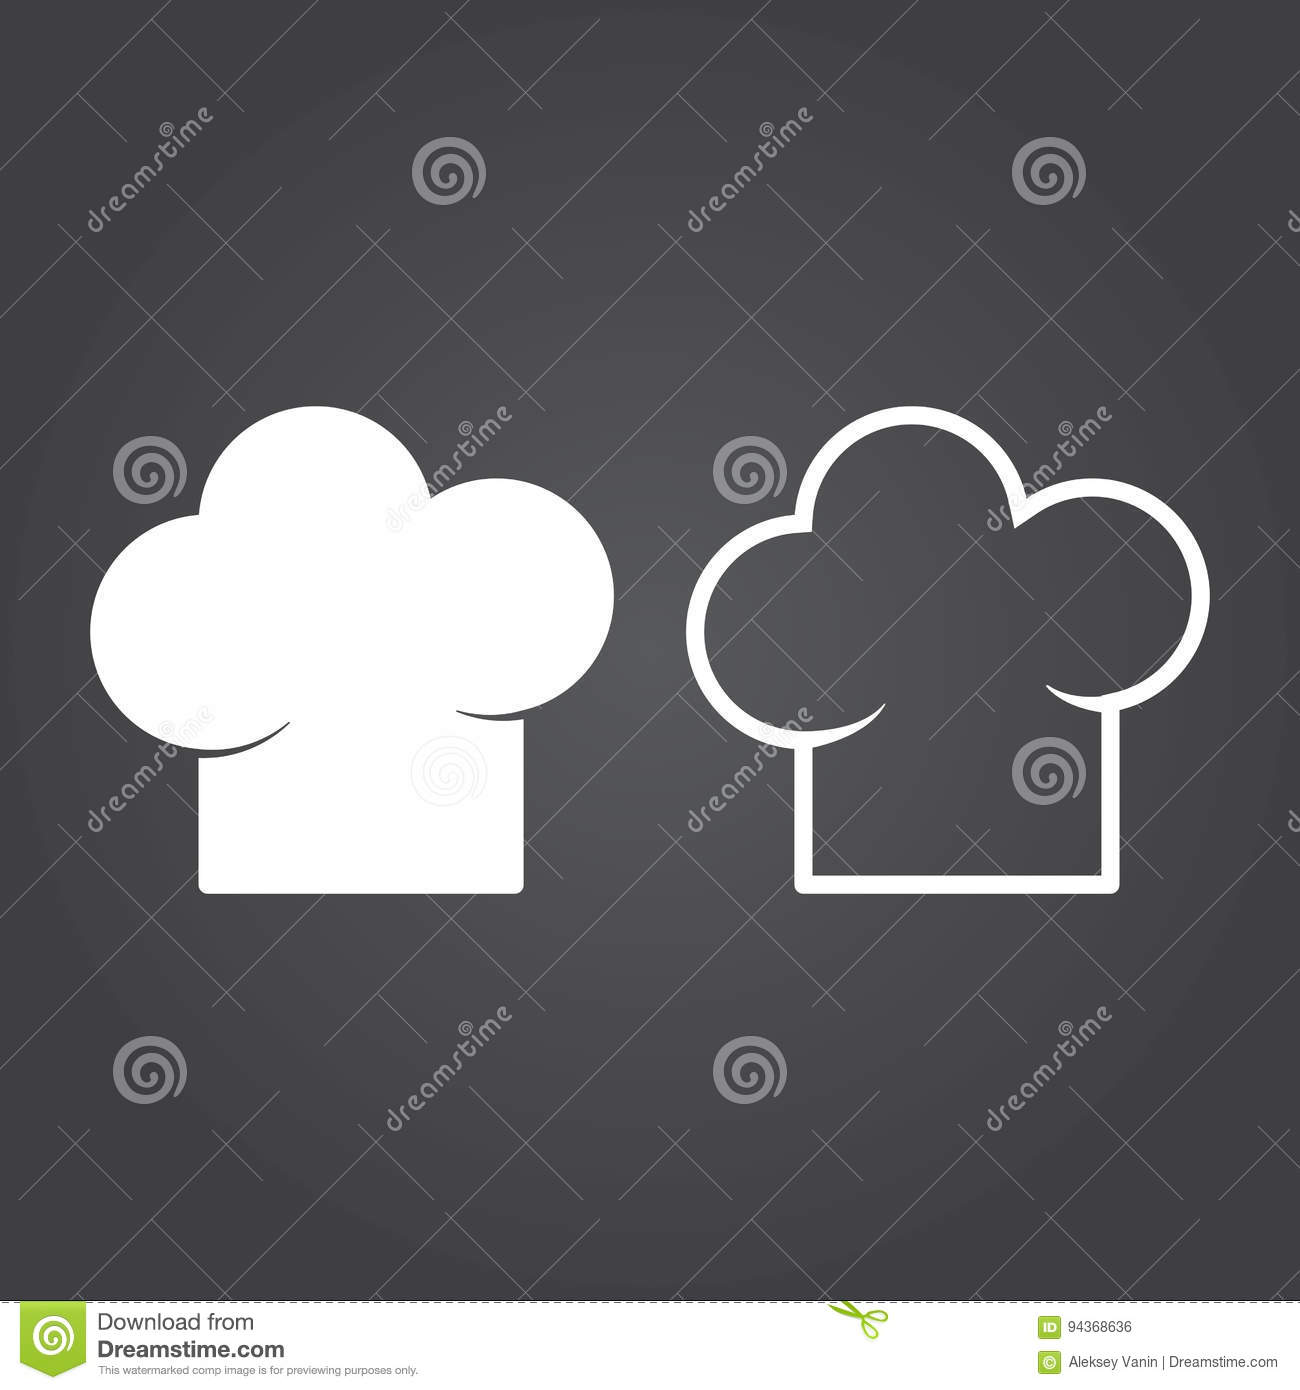 Chef Hat Icon  Solid And Outline Versions  White Icons On A